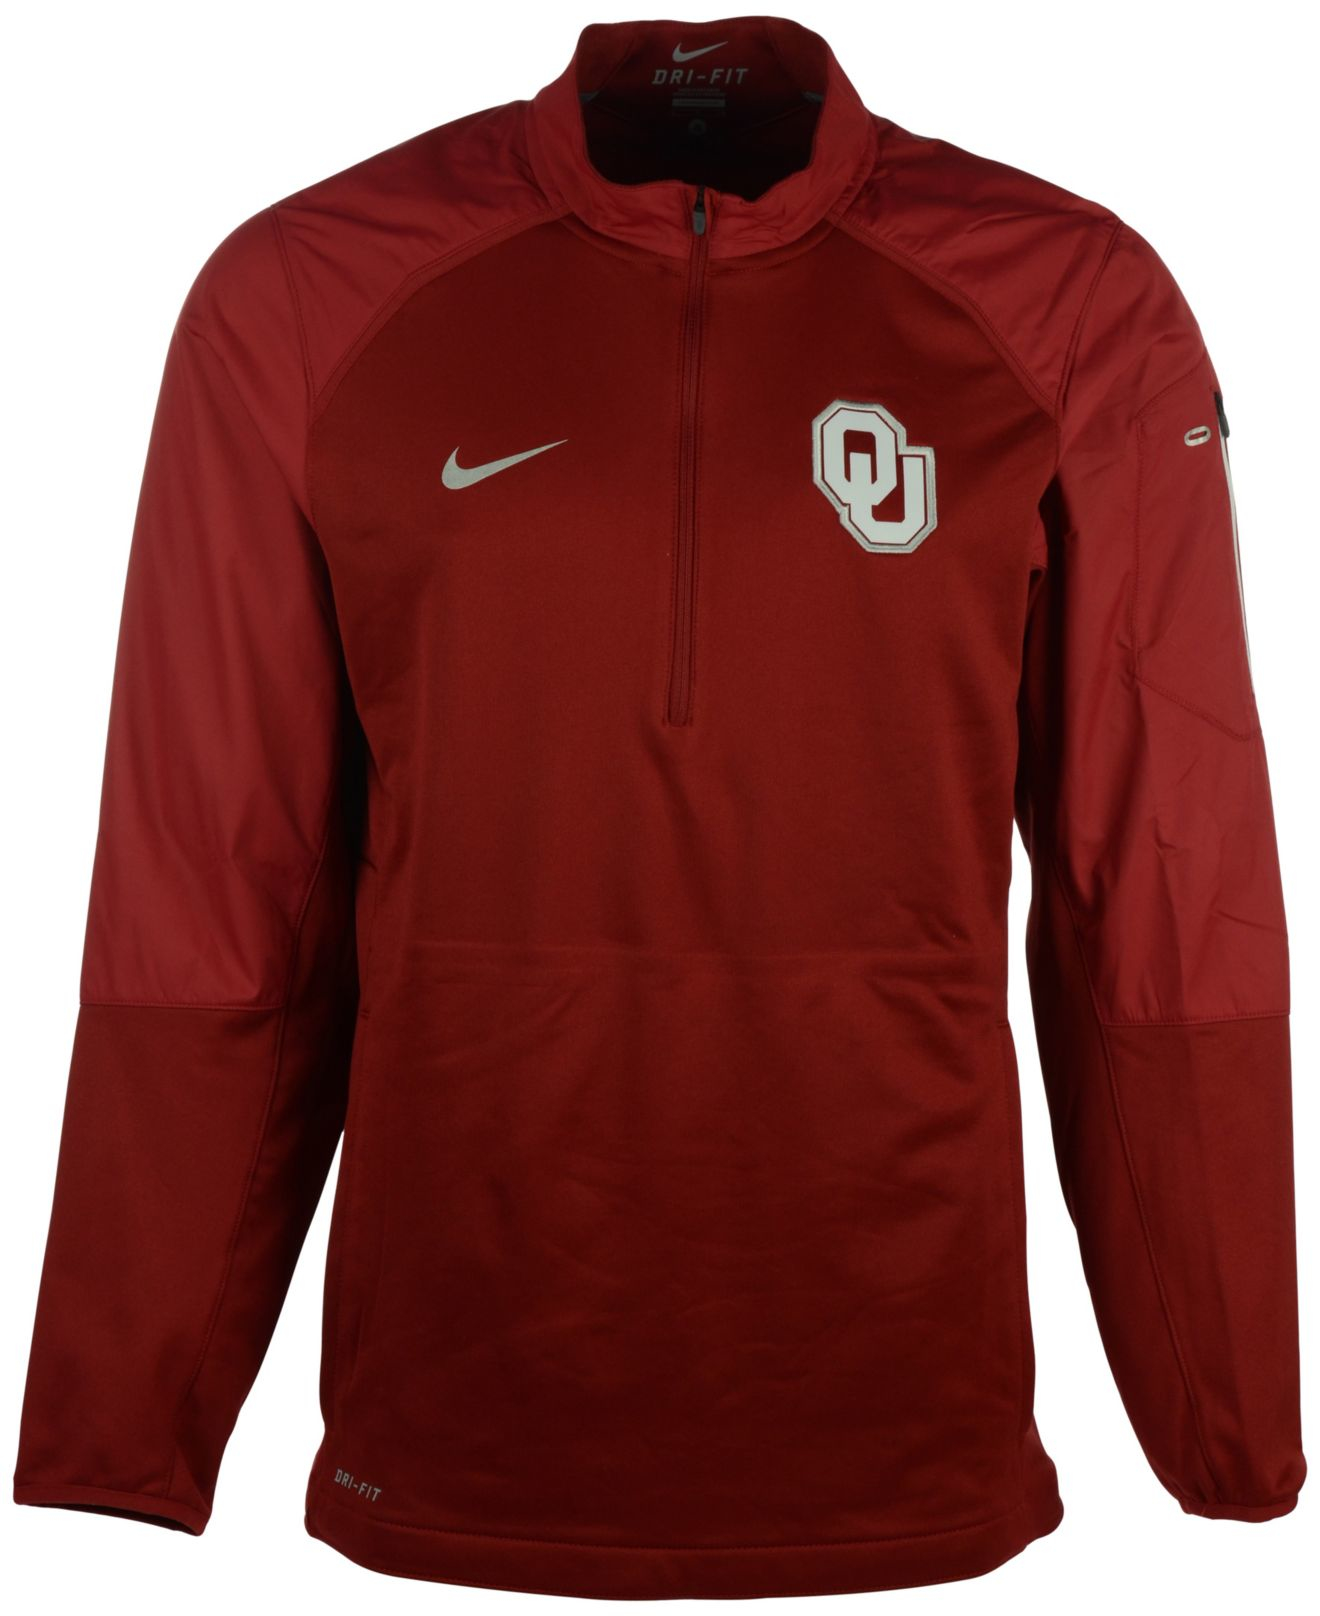 3f37431a985a Lyst - Nike Men s Oklahoma Sooners Hybrid Jacket in Red for Men